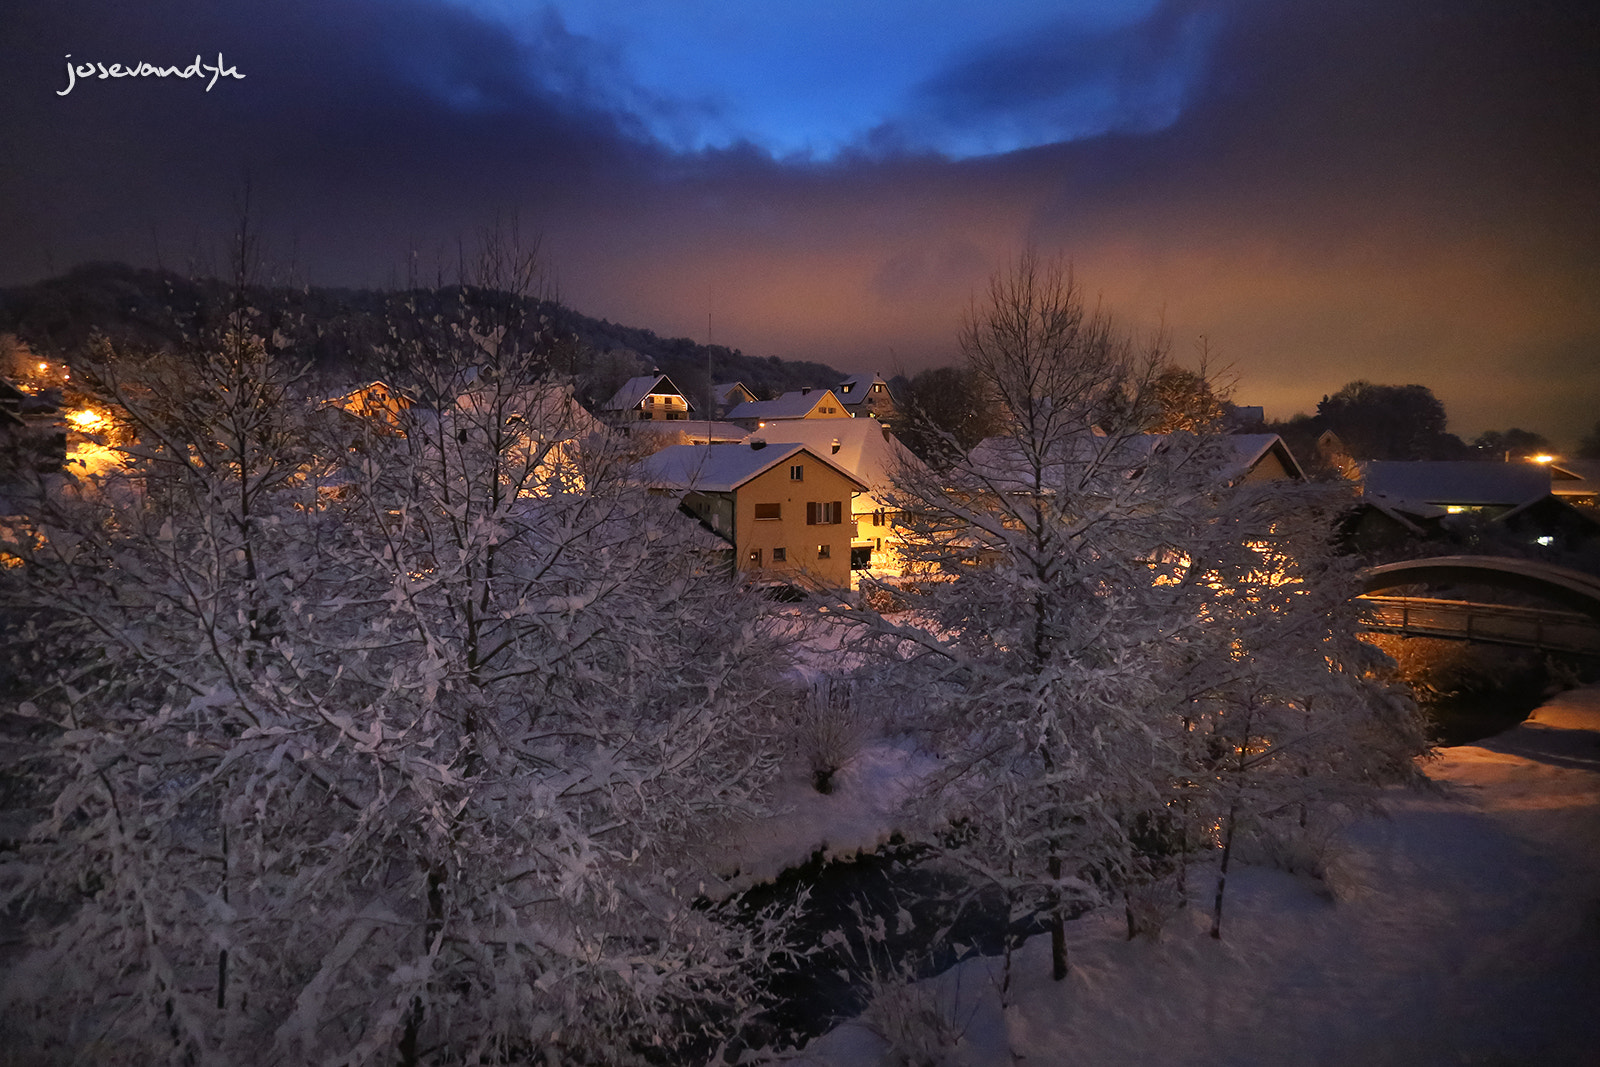 Photograph Winter village by Andy Beer on 500px